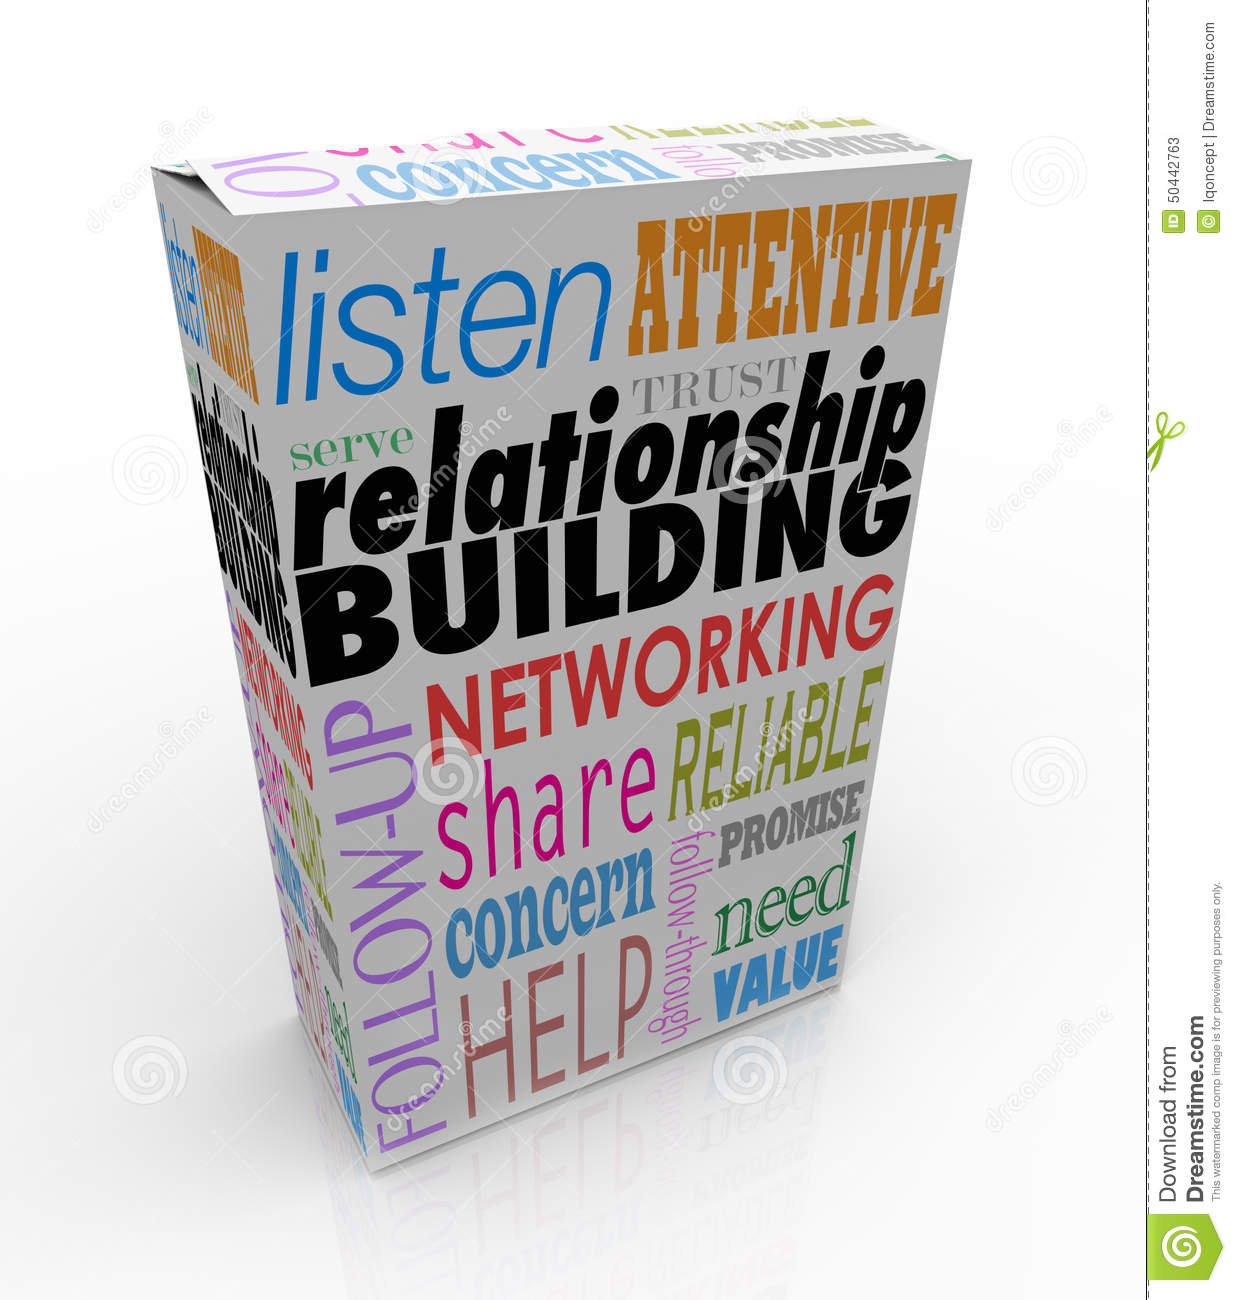 Relationship Building Product Box Advice Networking Grow